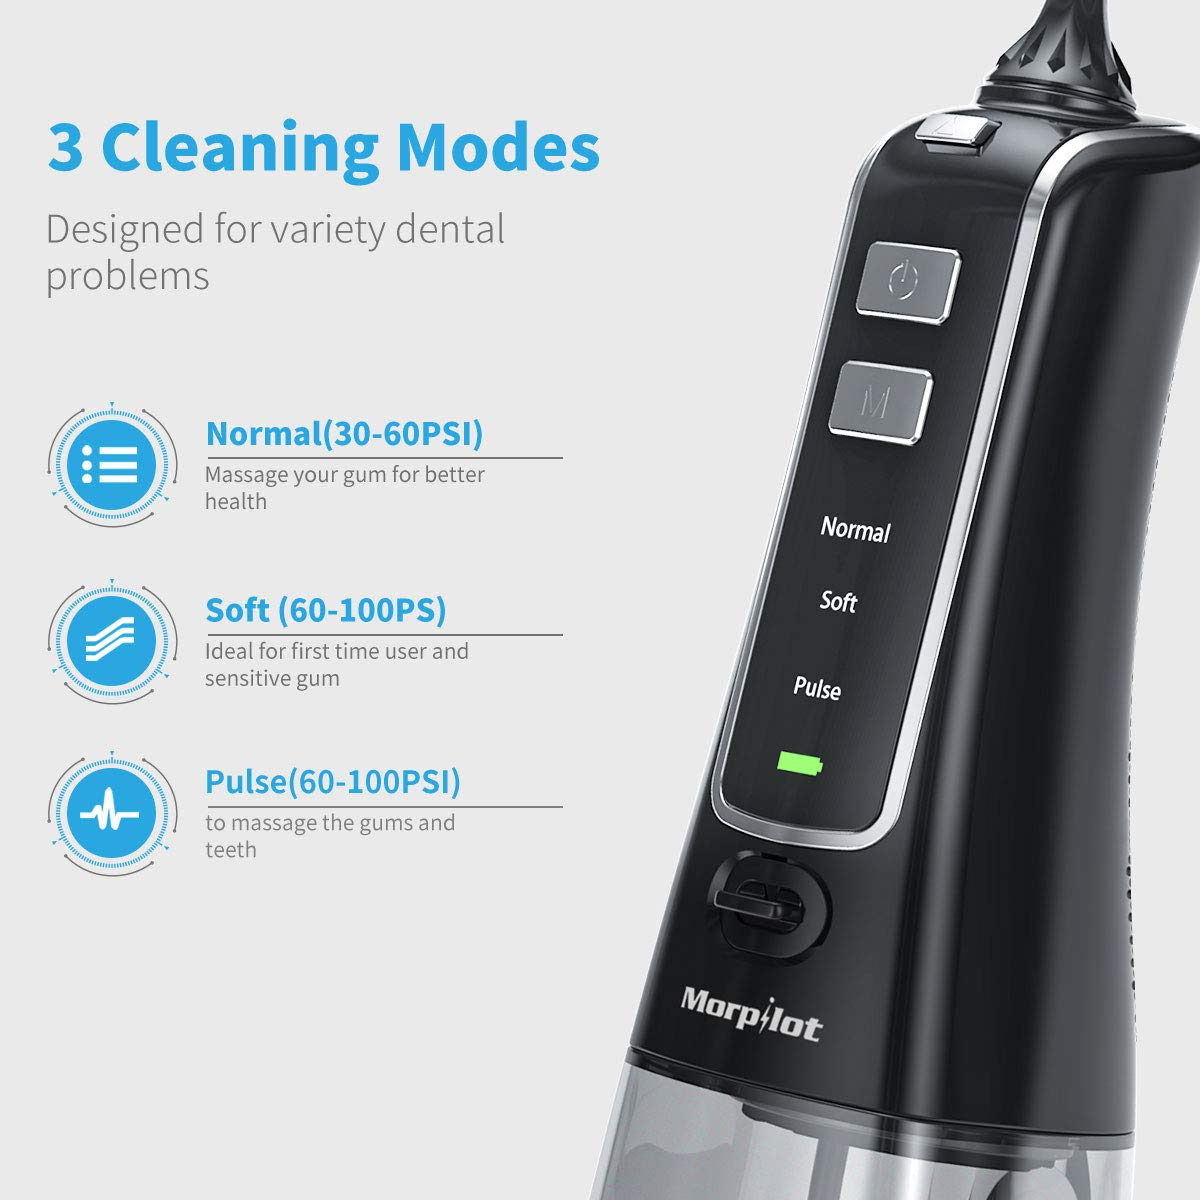 Cordless Water Flosser Portable Professional Dental Oral Irrigator 300ml Reservoir IPX7 Waterproof FDA With 5 Jet Tips for Home and Travel